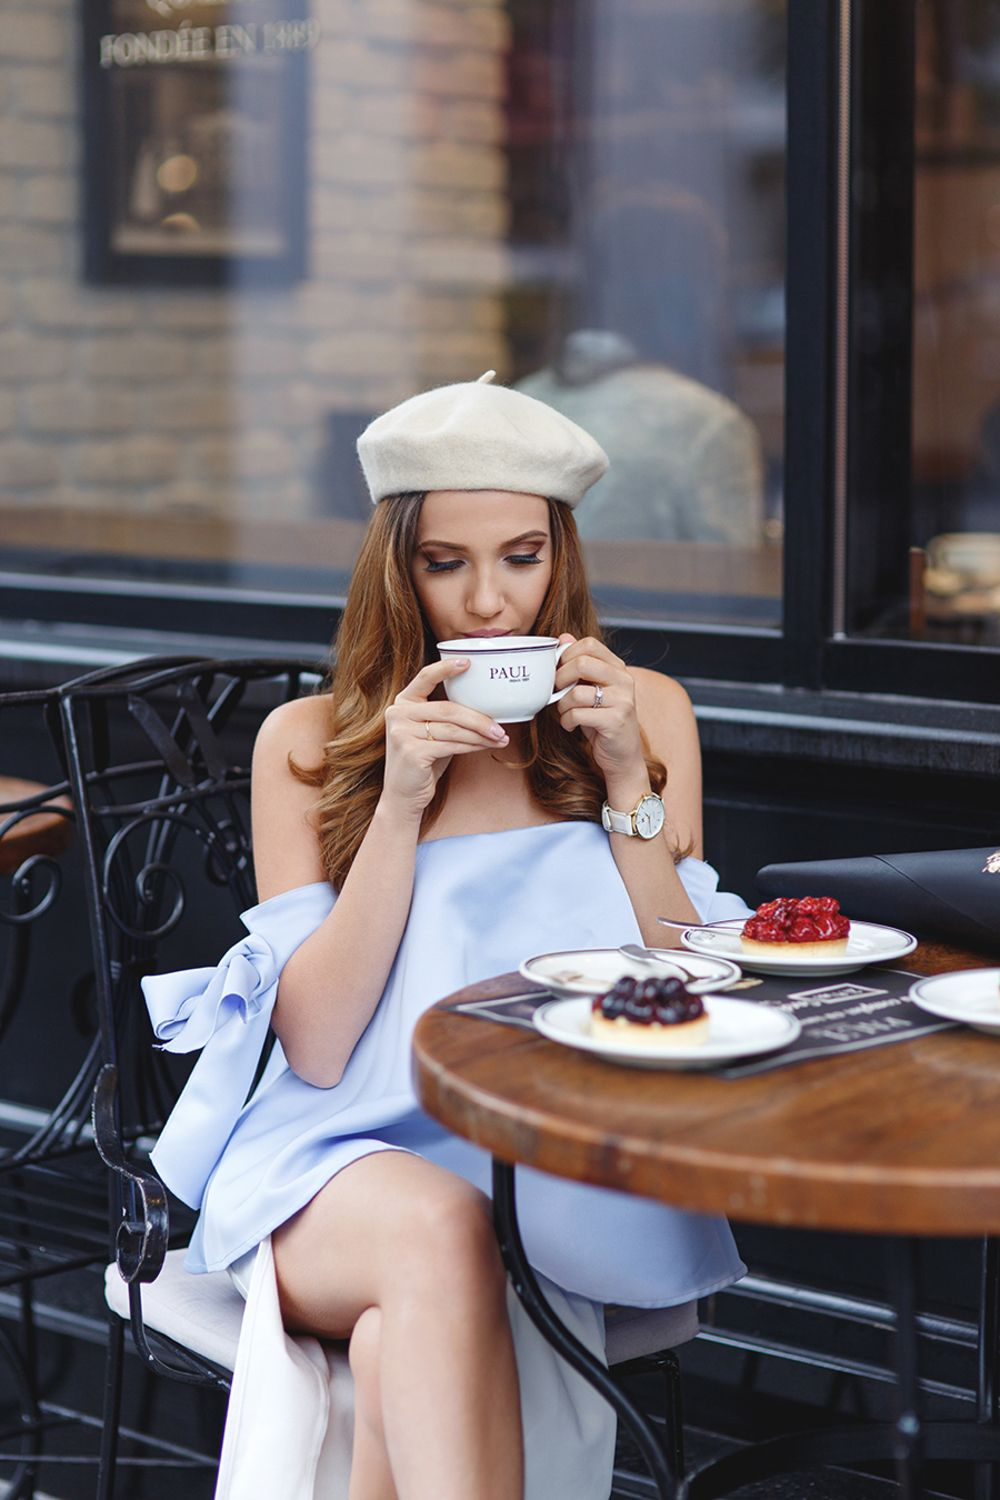 d81bbd699277 5 Parisian Cafes That Might As Well Have A Dress Code - Cute French Style  Beige Beret And Off The Shoulder Pale Blue Mini Dress